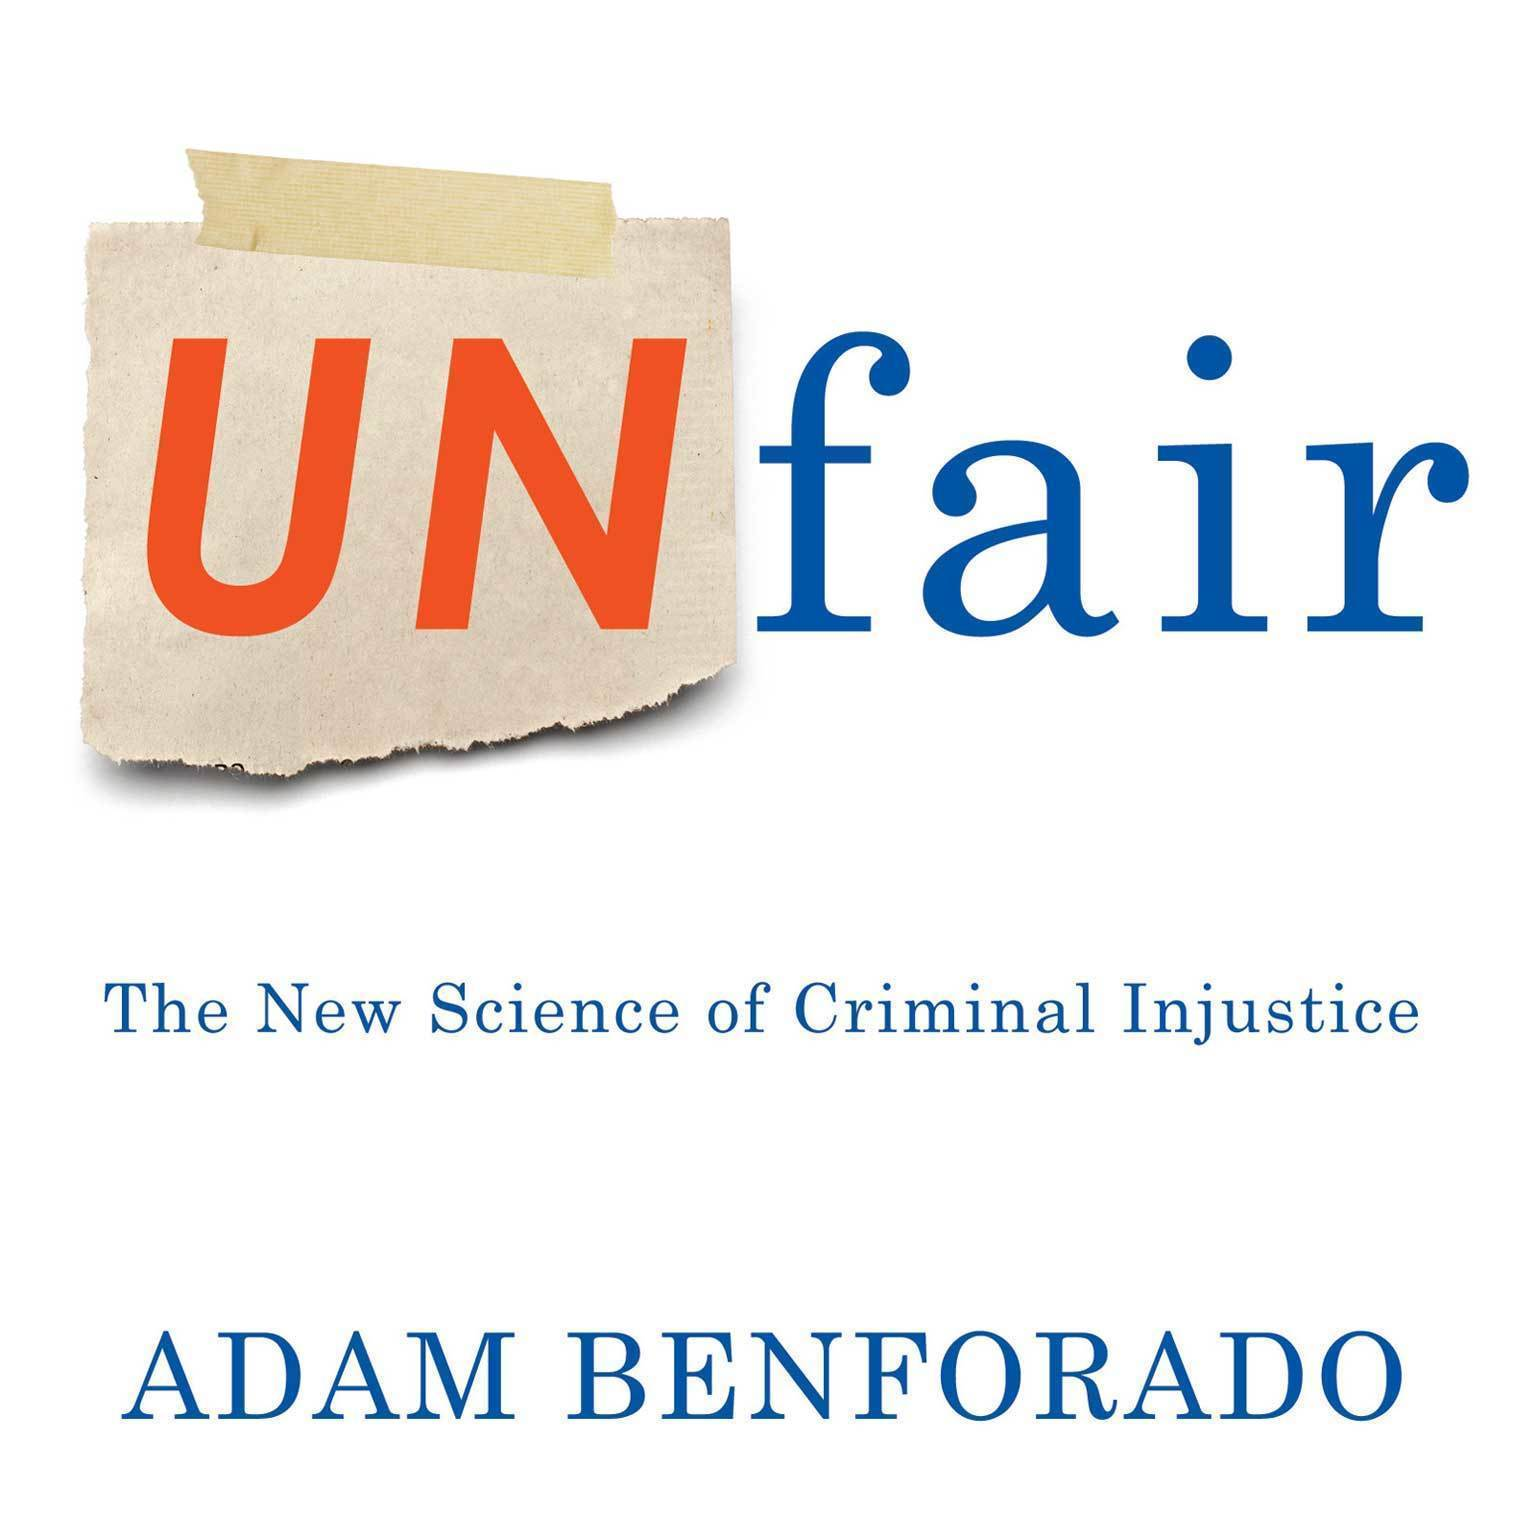 The New Science of Criminal Injustice - Adam Benforado